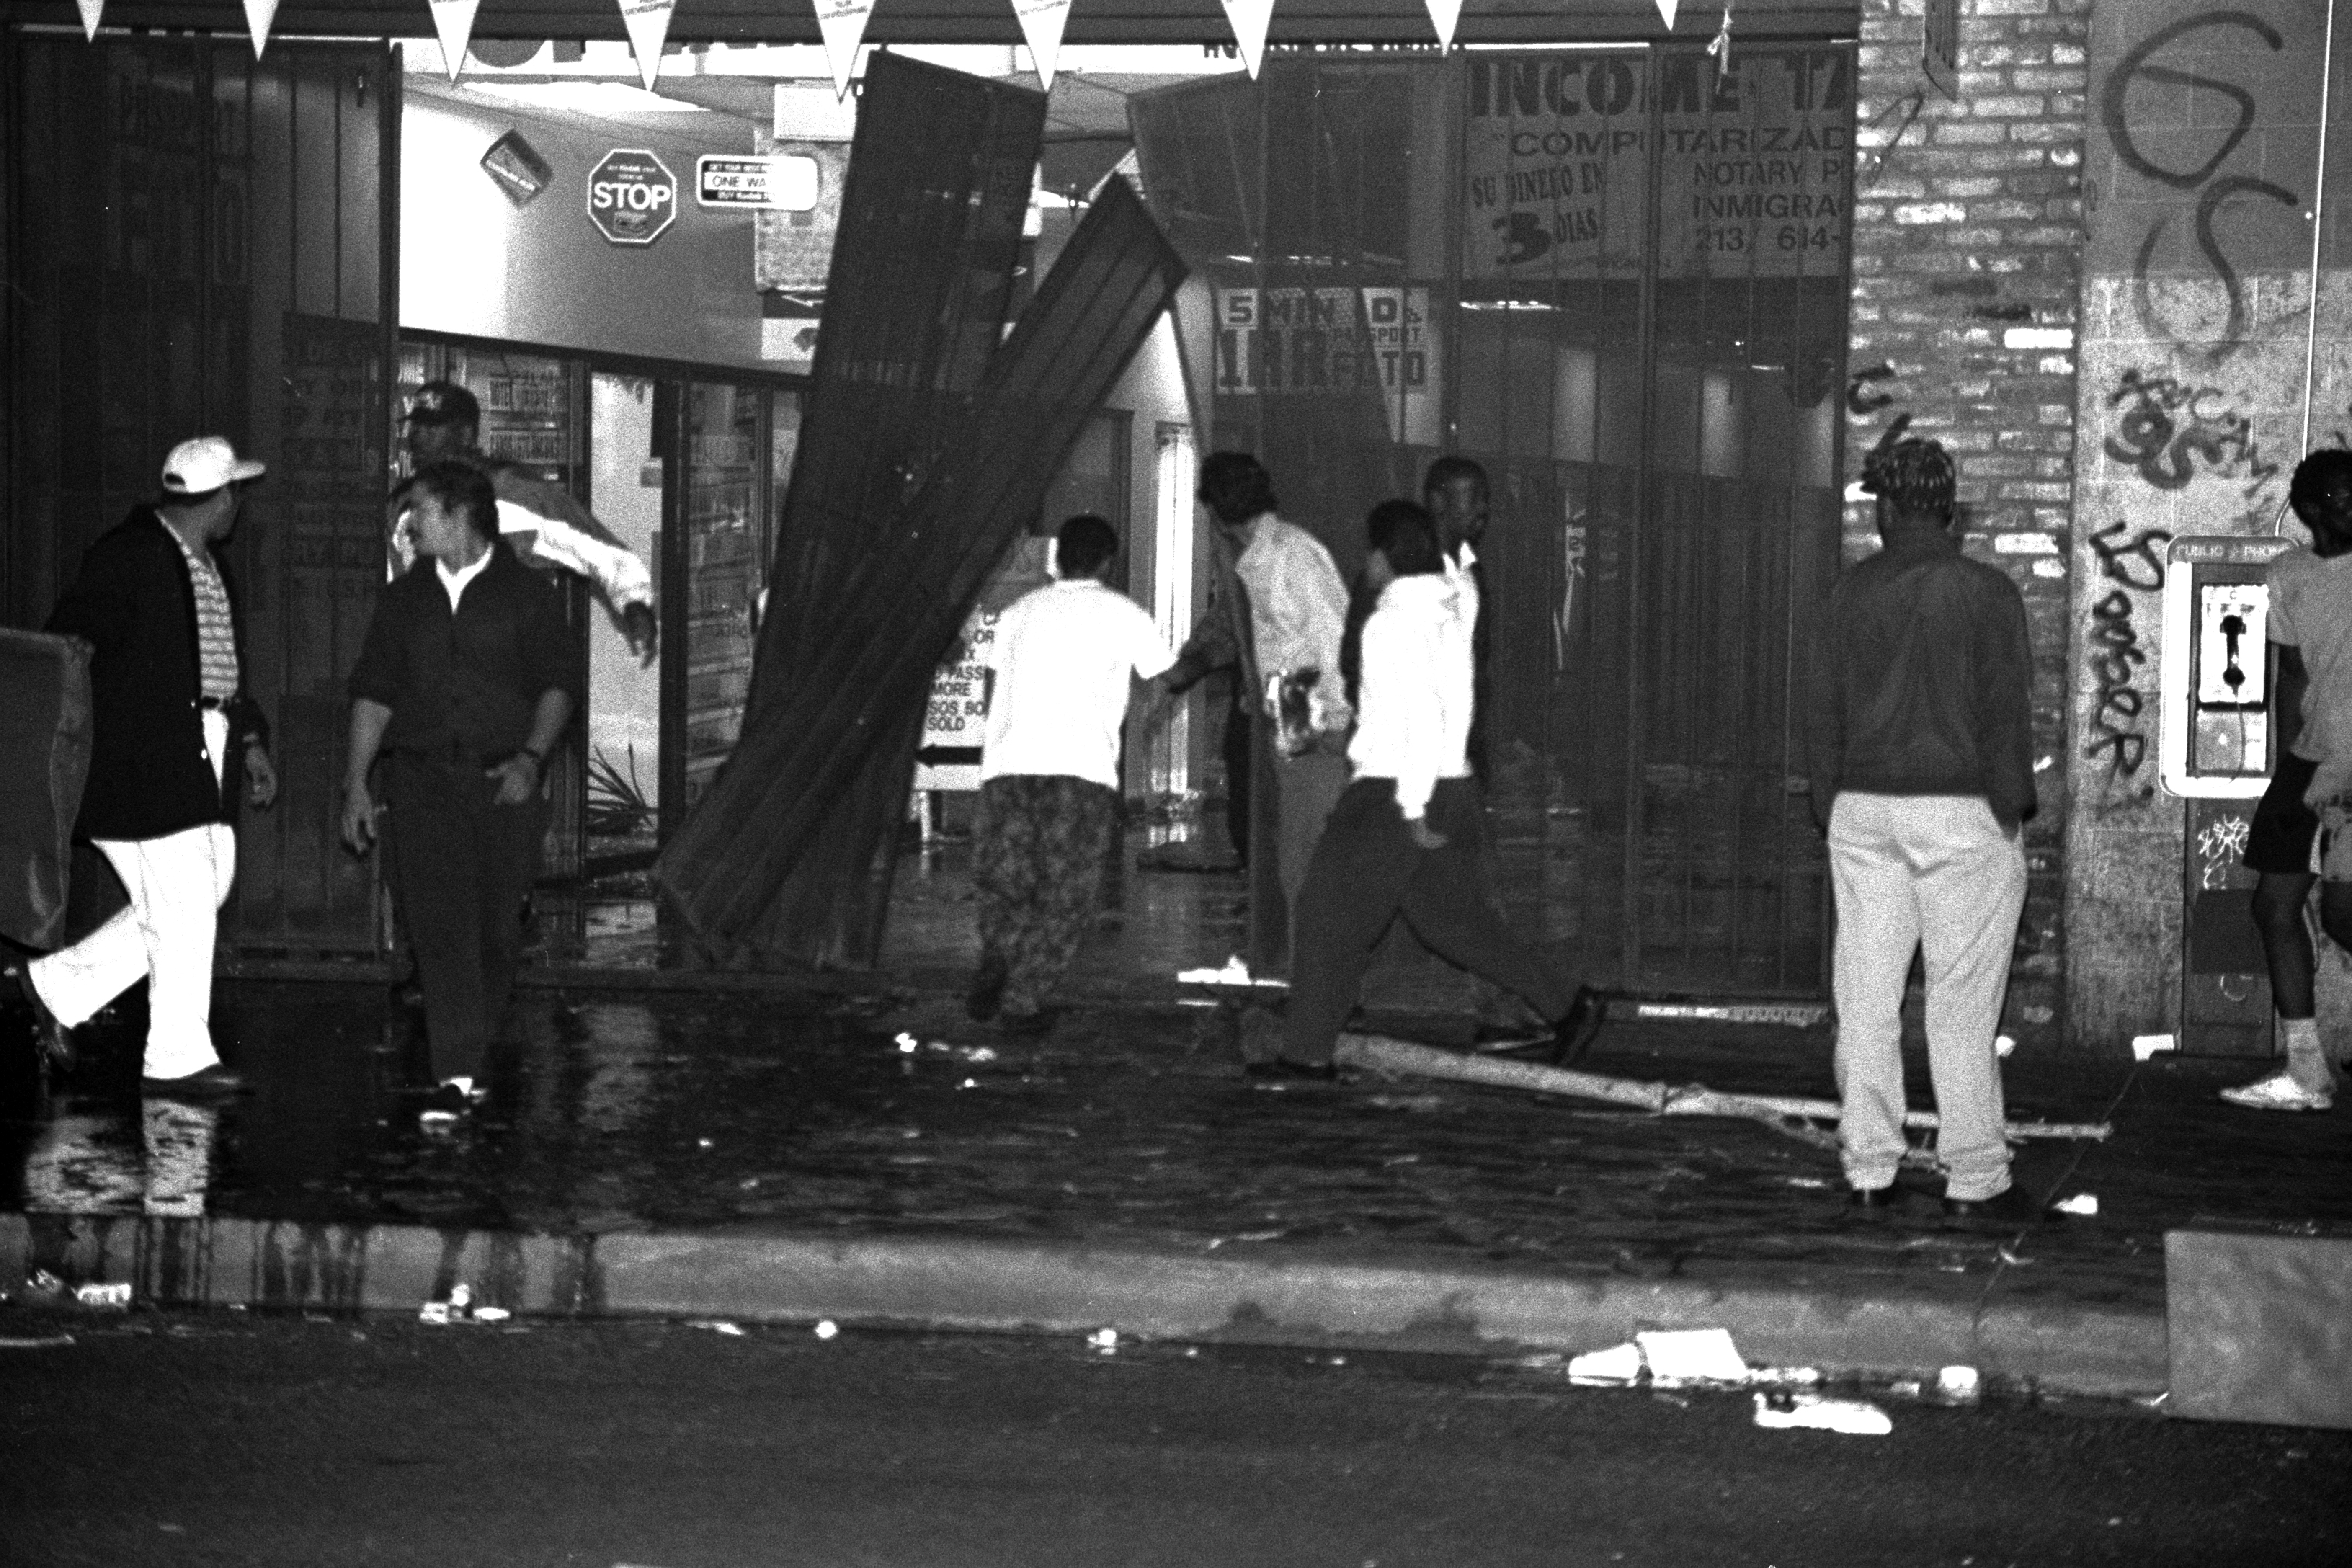 LOS ANGELES, CA - 29 APRIL 1992: Looters tear down storefronts on South Broadway in downtown Los Angeles during night one of the Rodney King Riots on 29 April 1992 in Los Angeles, CA. SHUTTERSTOCK/a katz